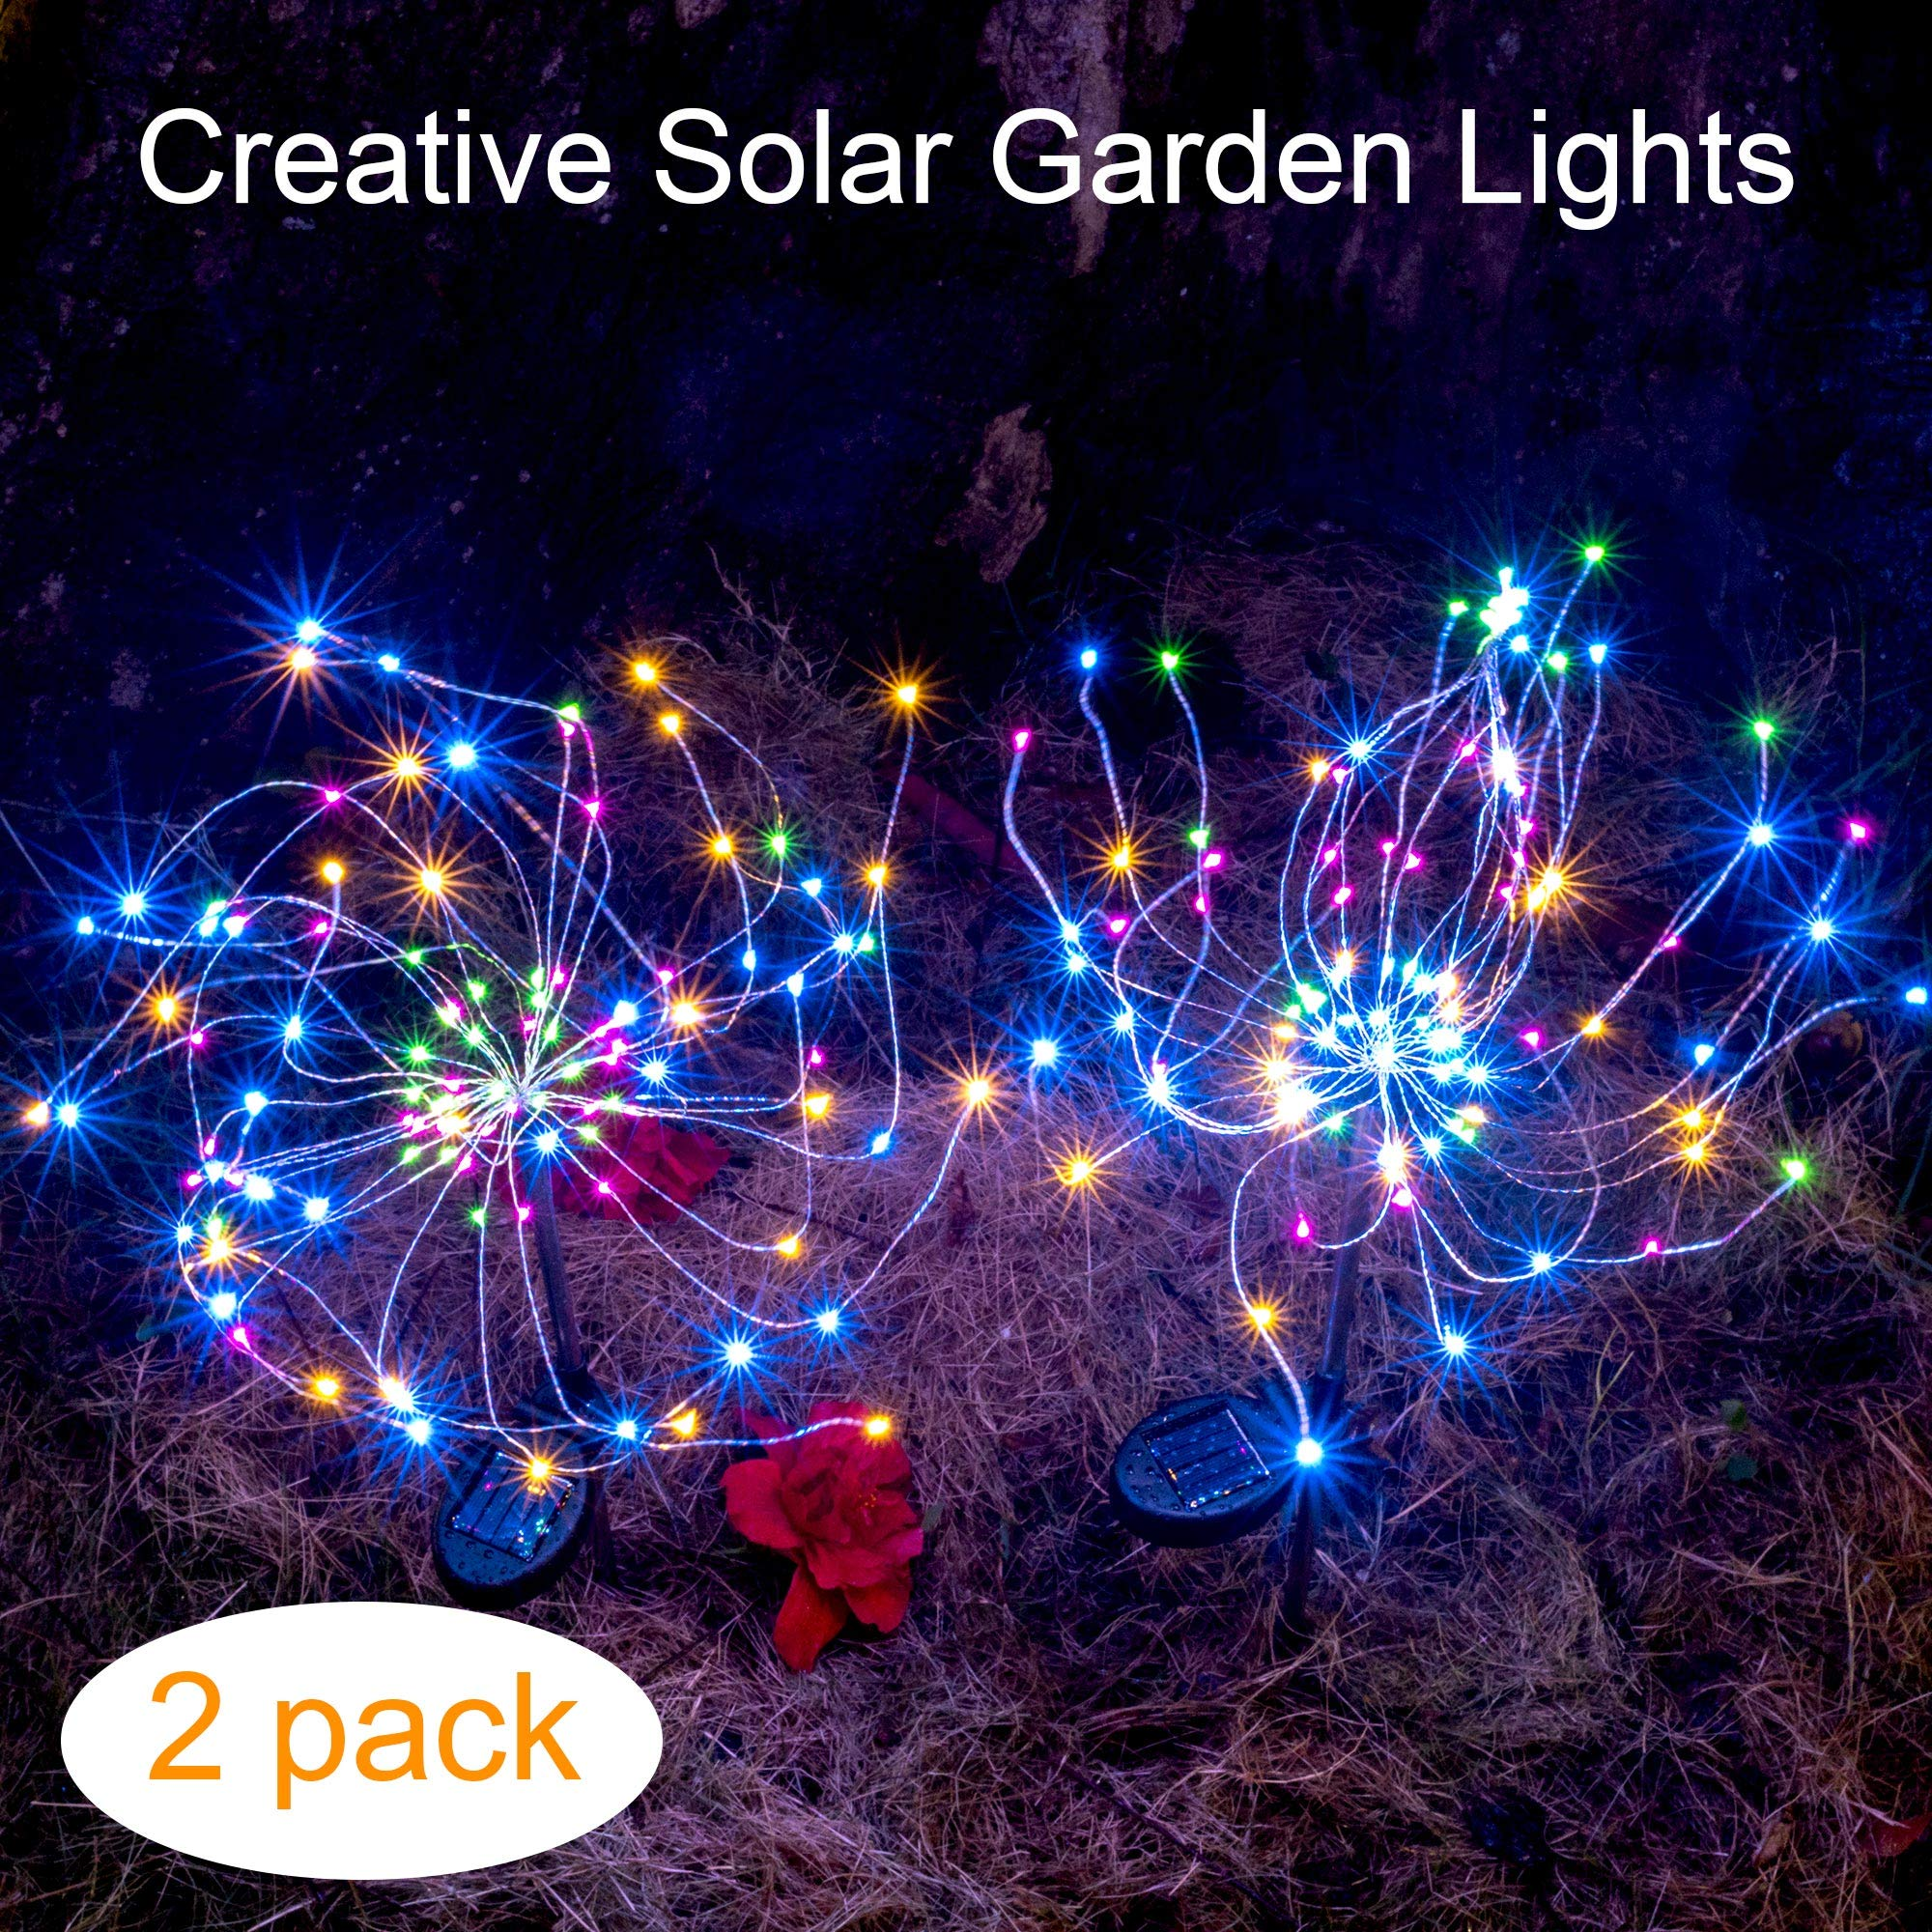 Outdoor Solar Garden Decorative Lights-Mopha Solar 105LED Powered 35Copper Wires String Landscape Light-DIY Flowers Fireworks Trees for Walkway Patio Lawn Backyard,Christmas Party Decor(Multi-Color)